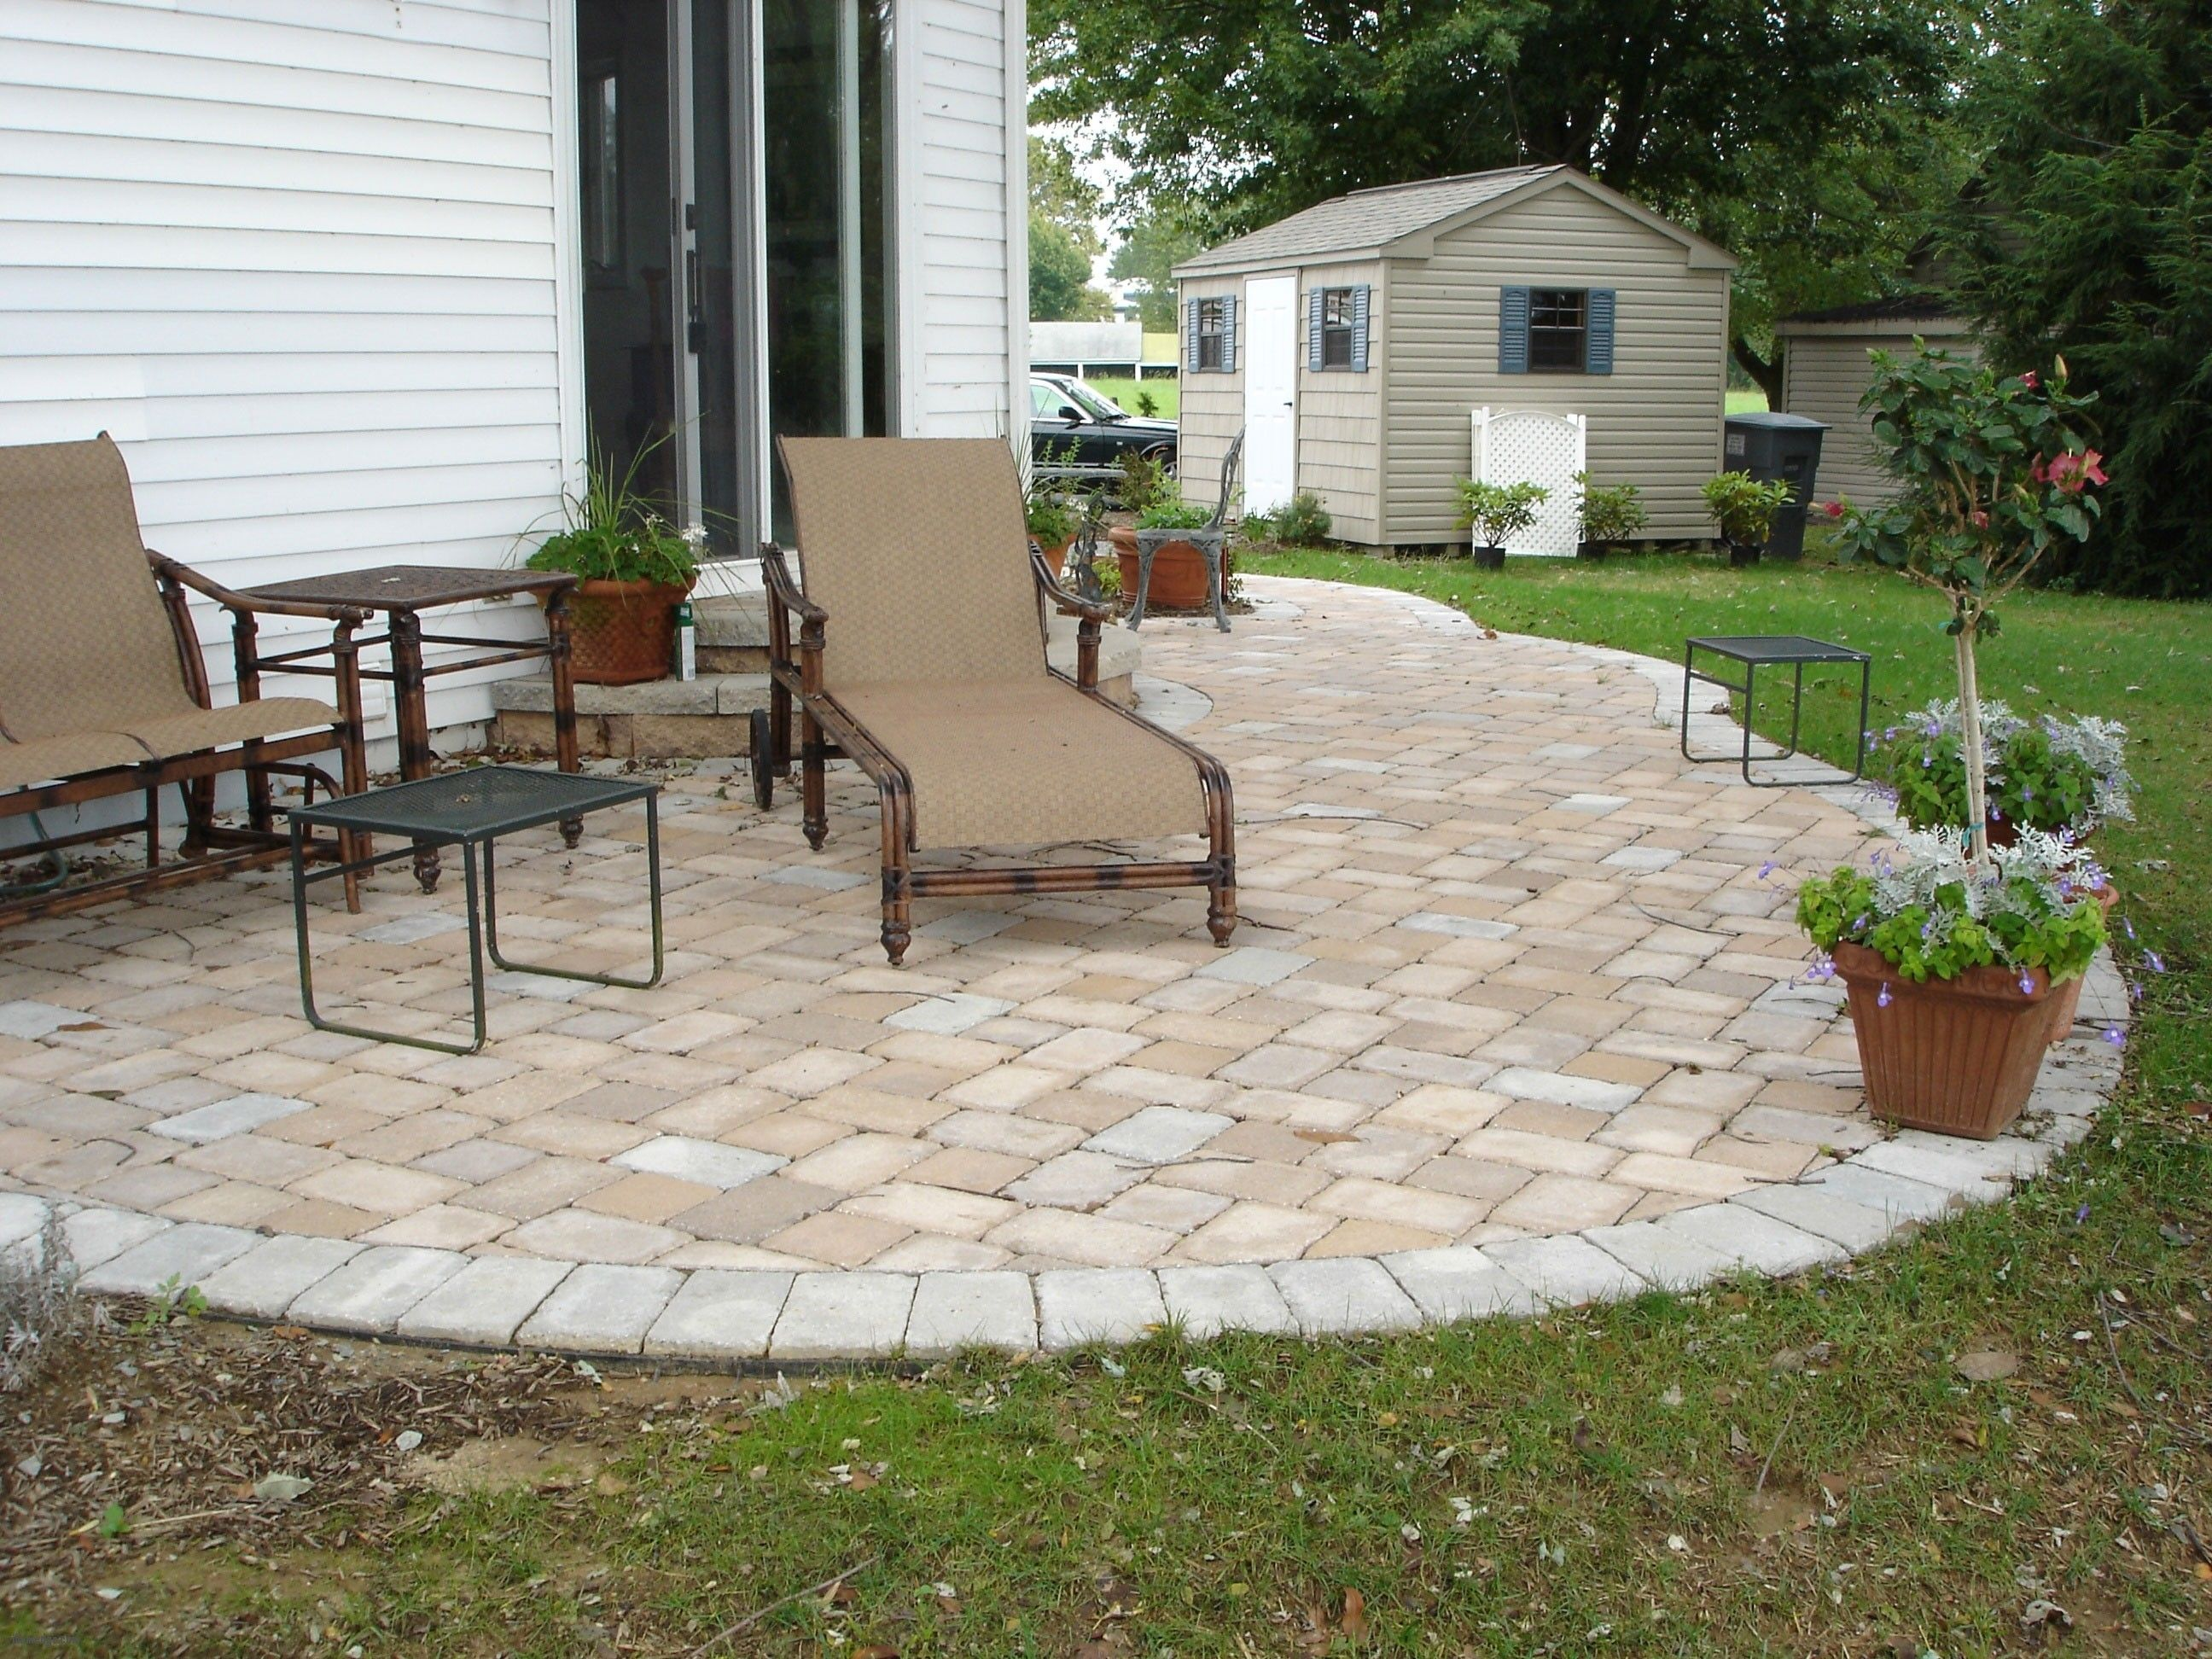 Pin By Ihomedge On Patio Ideas Pinterest Patio Patio Design And